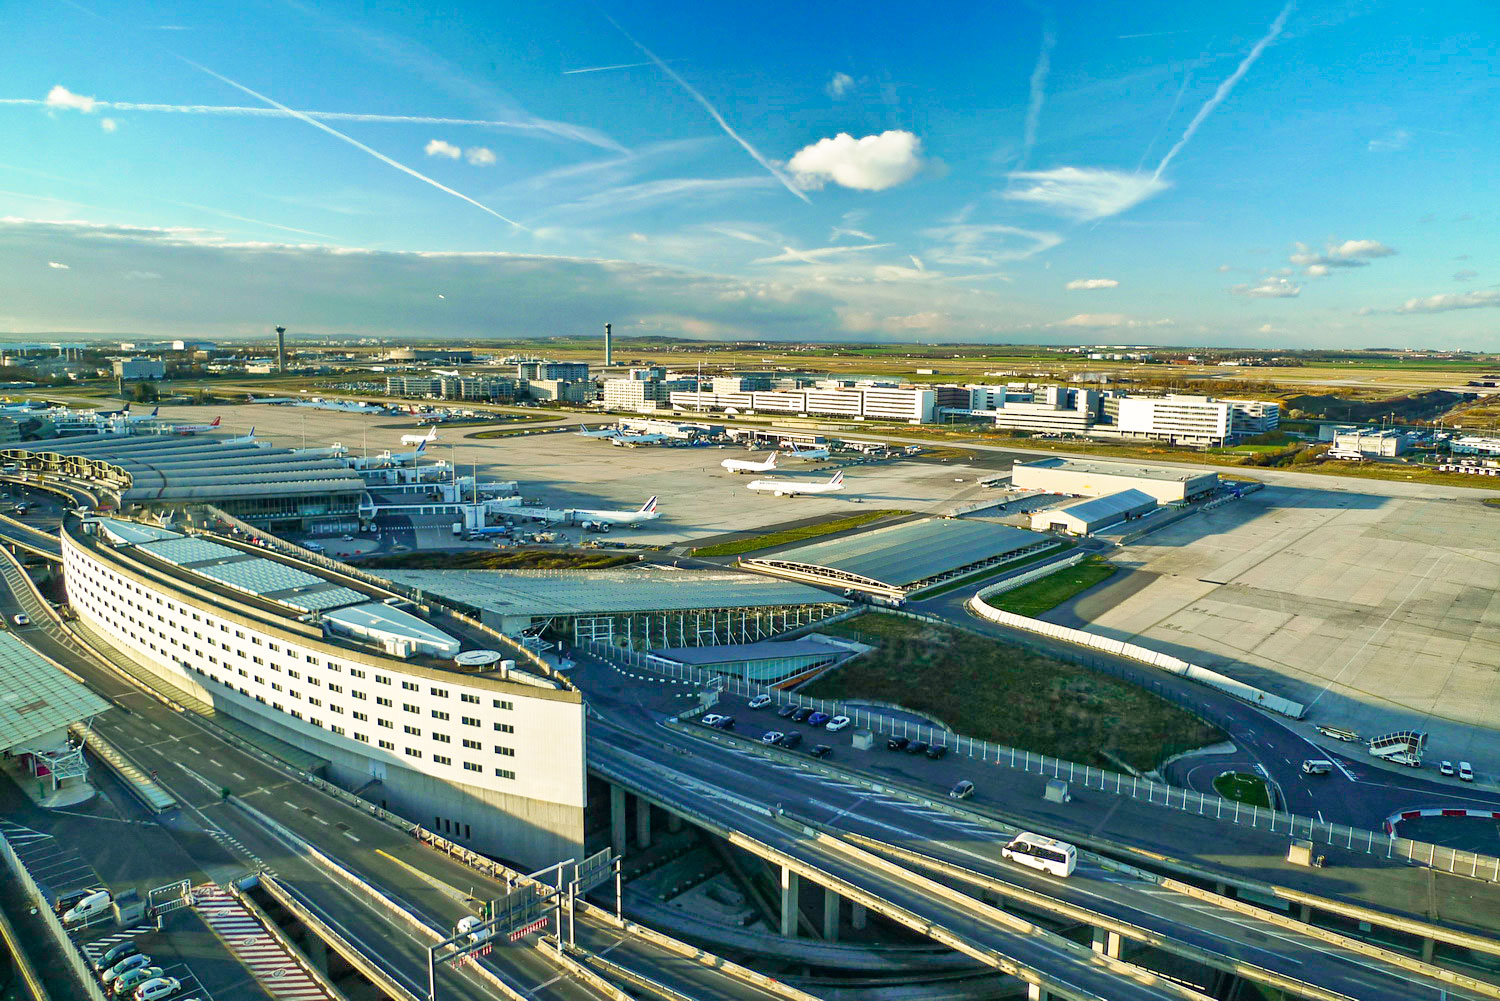 Charles-de-Gaulle-Airport-by-Greenboost-[Public-Domain]